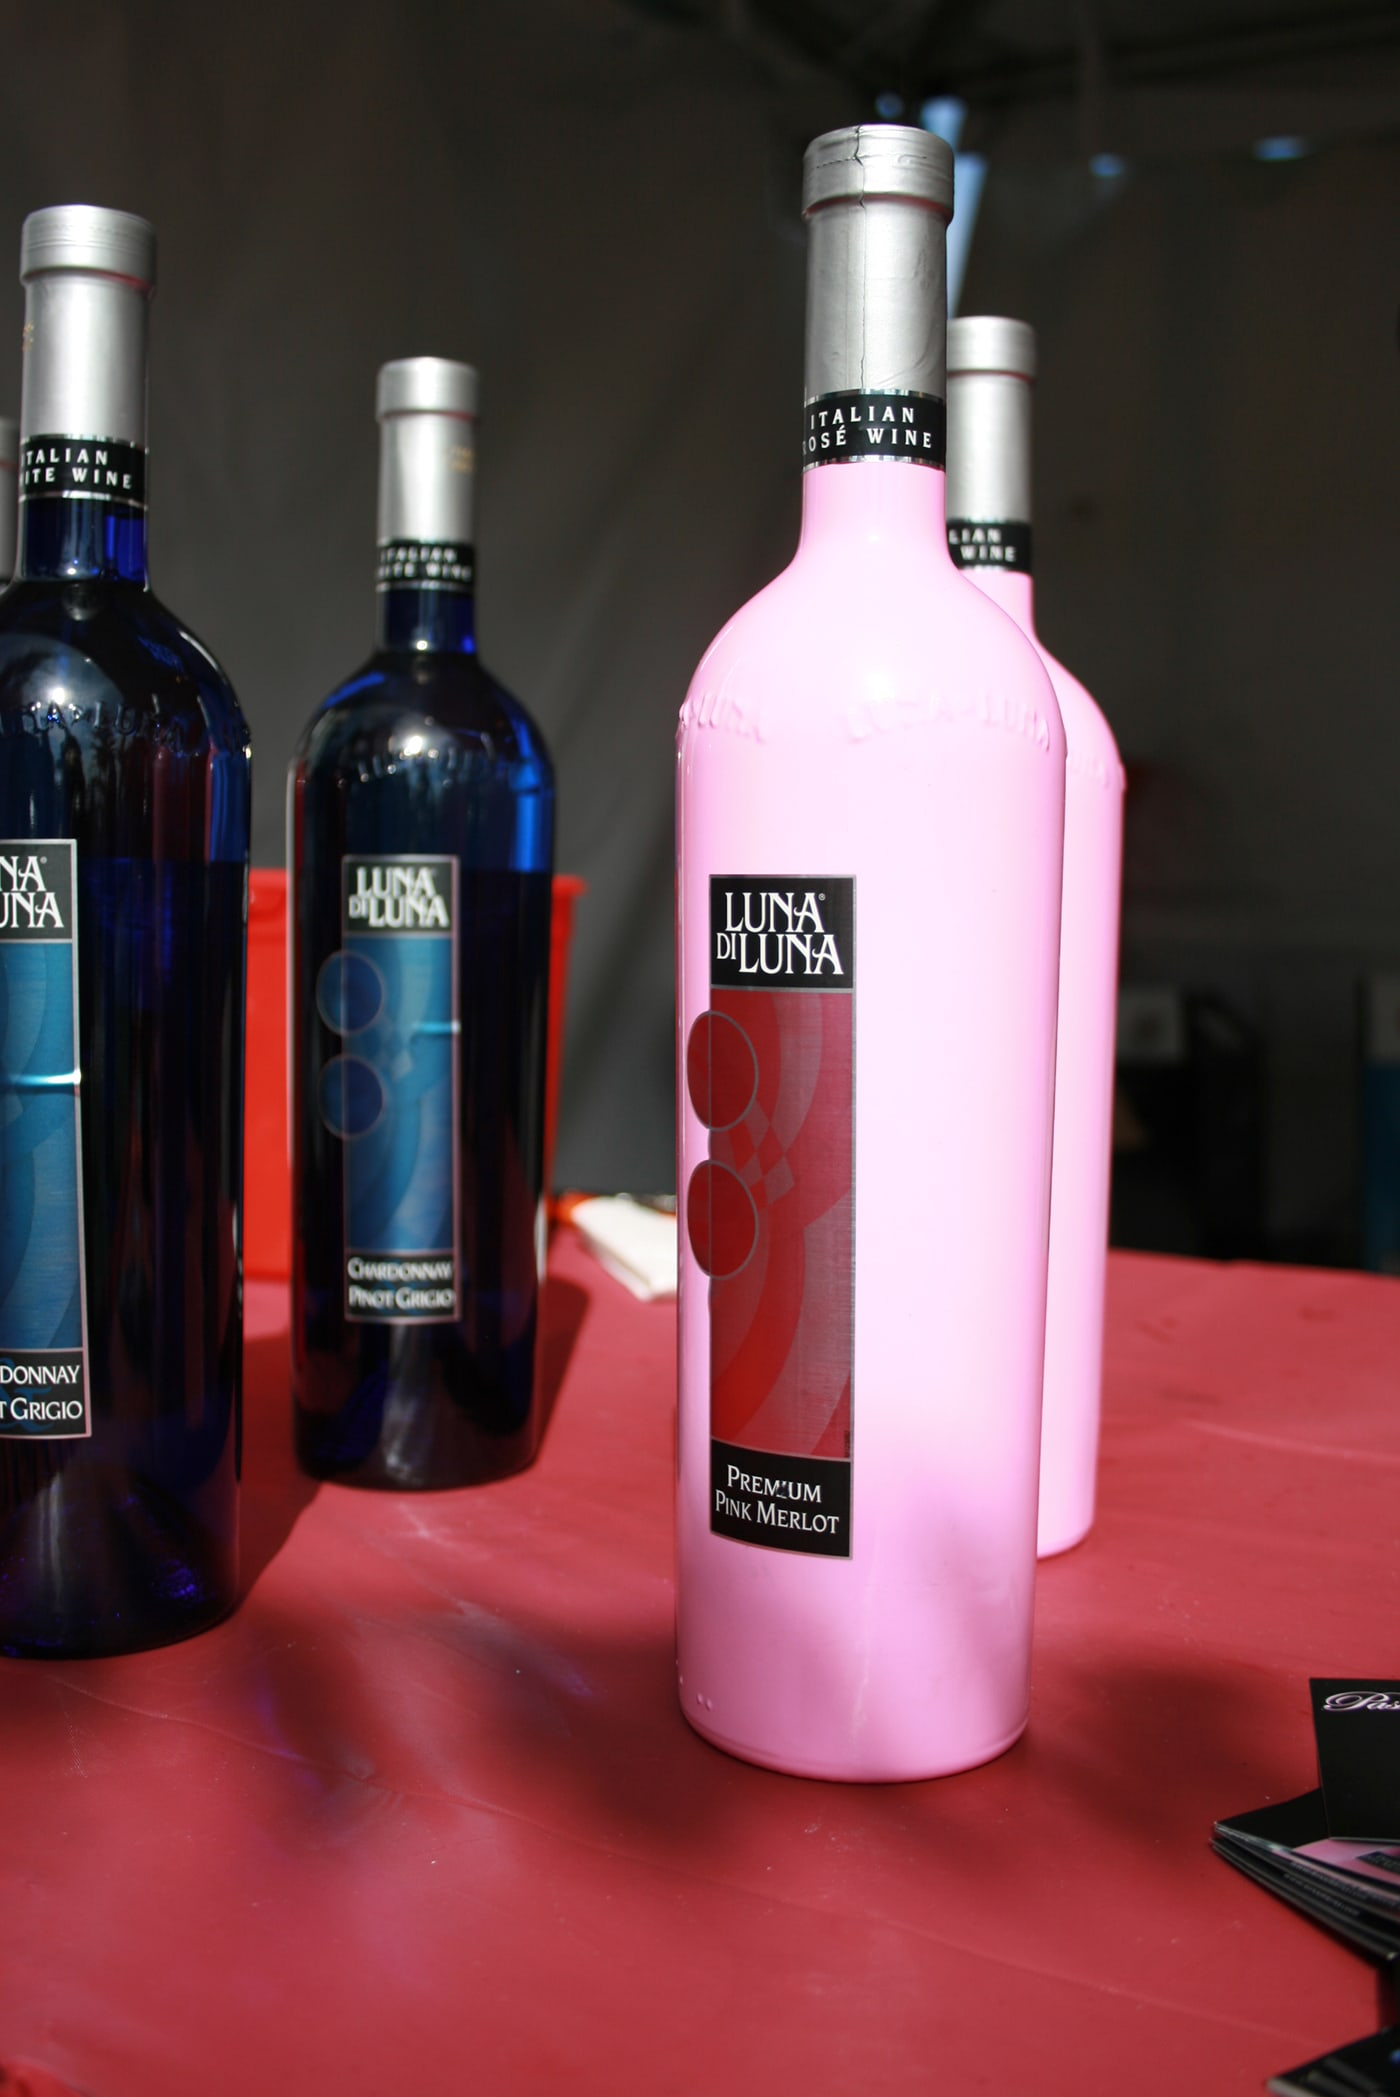 Pink merlot in a pink bottle at Windy City Wine Festival in Chicago, Illinois.